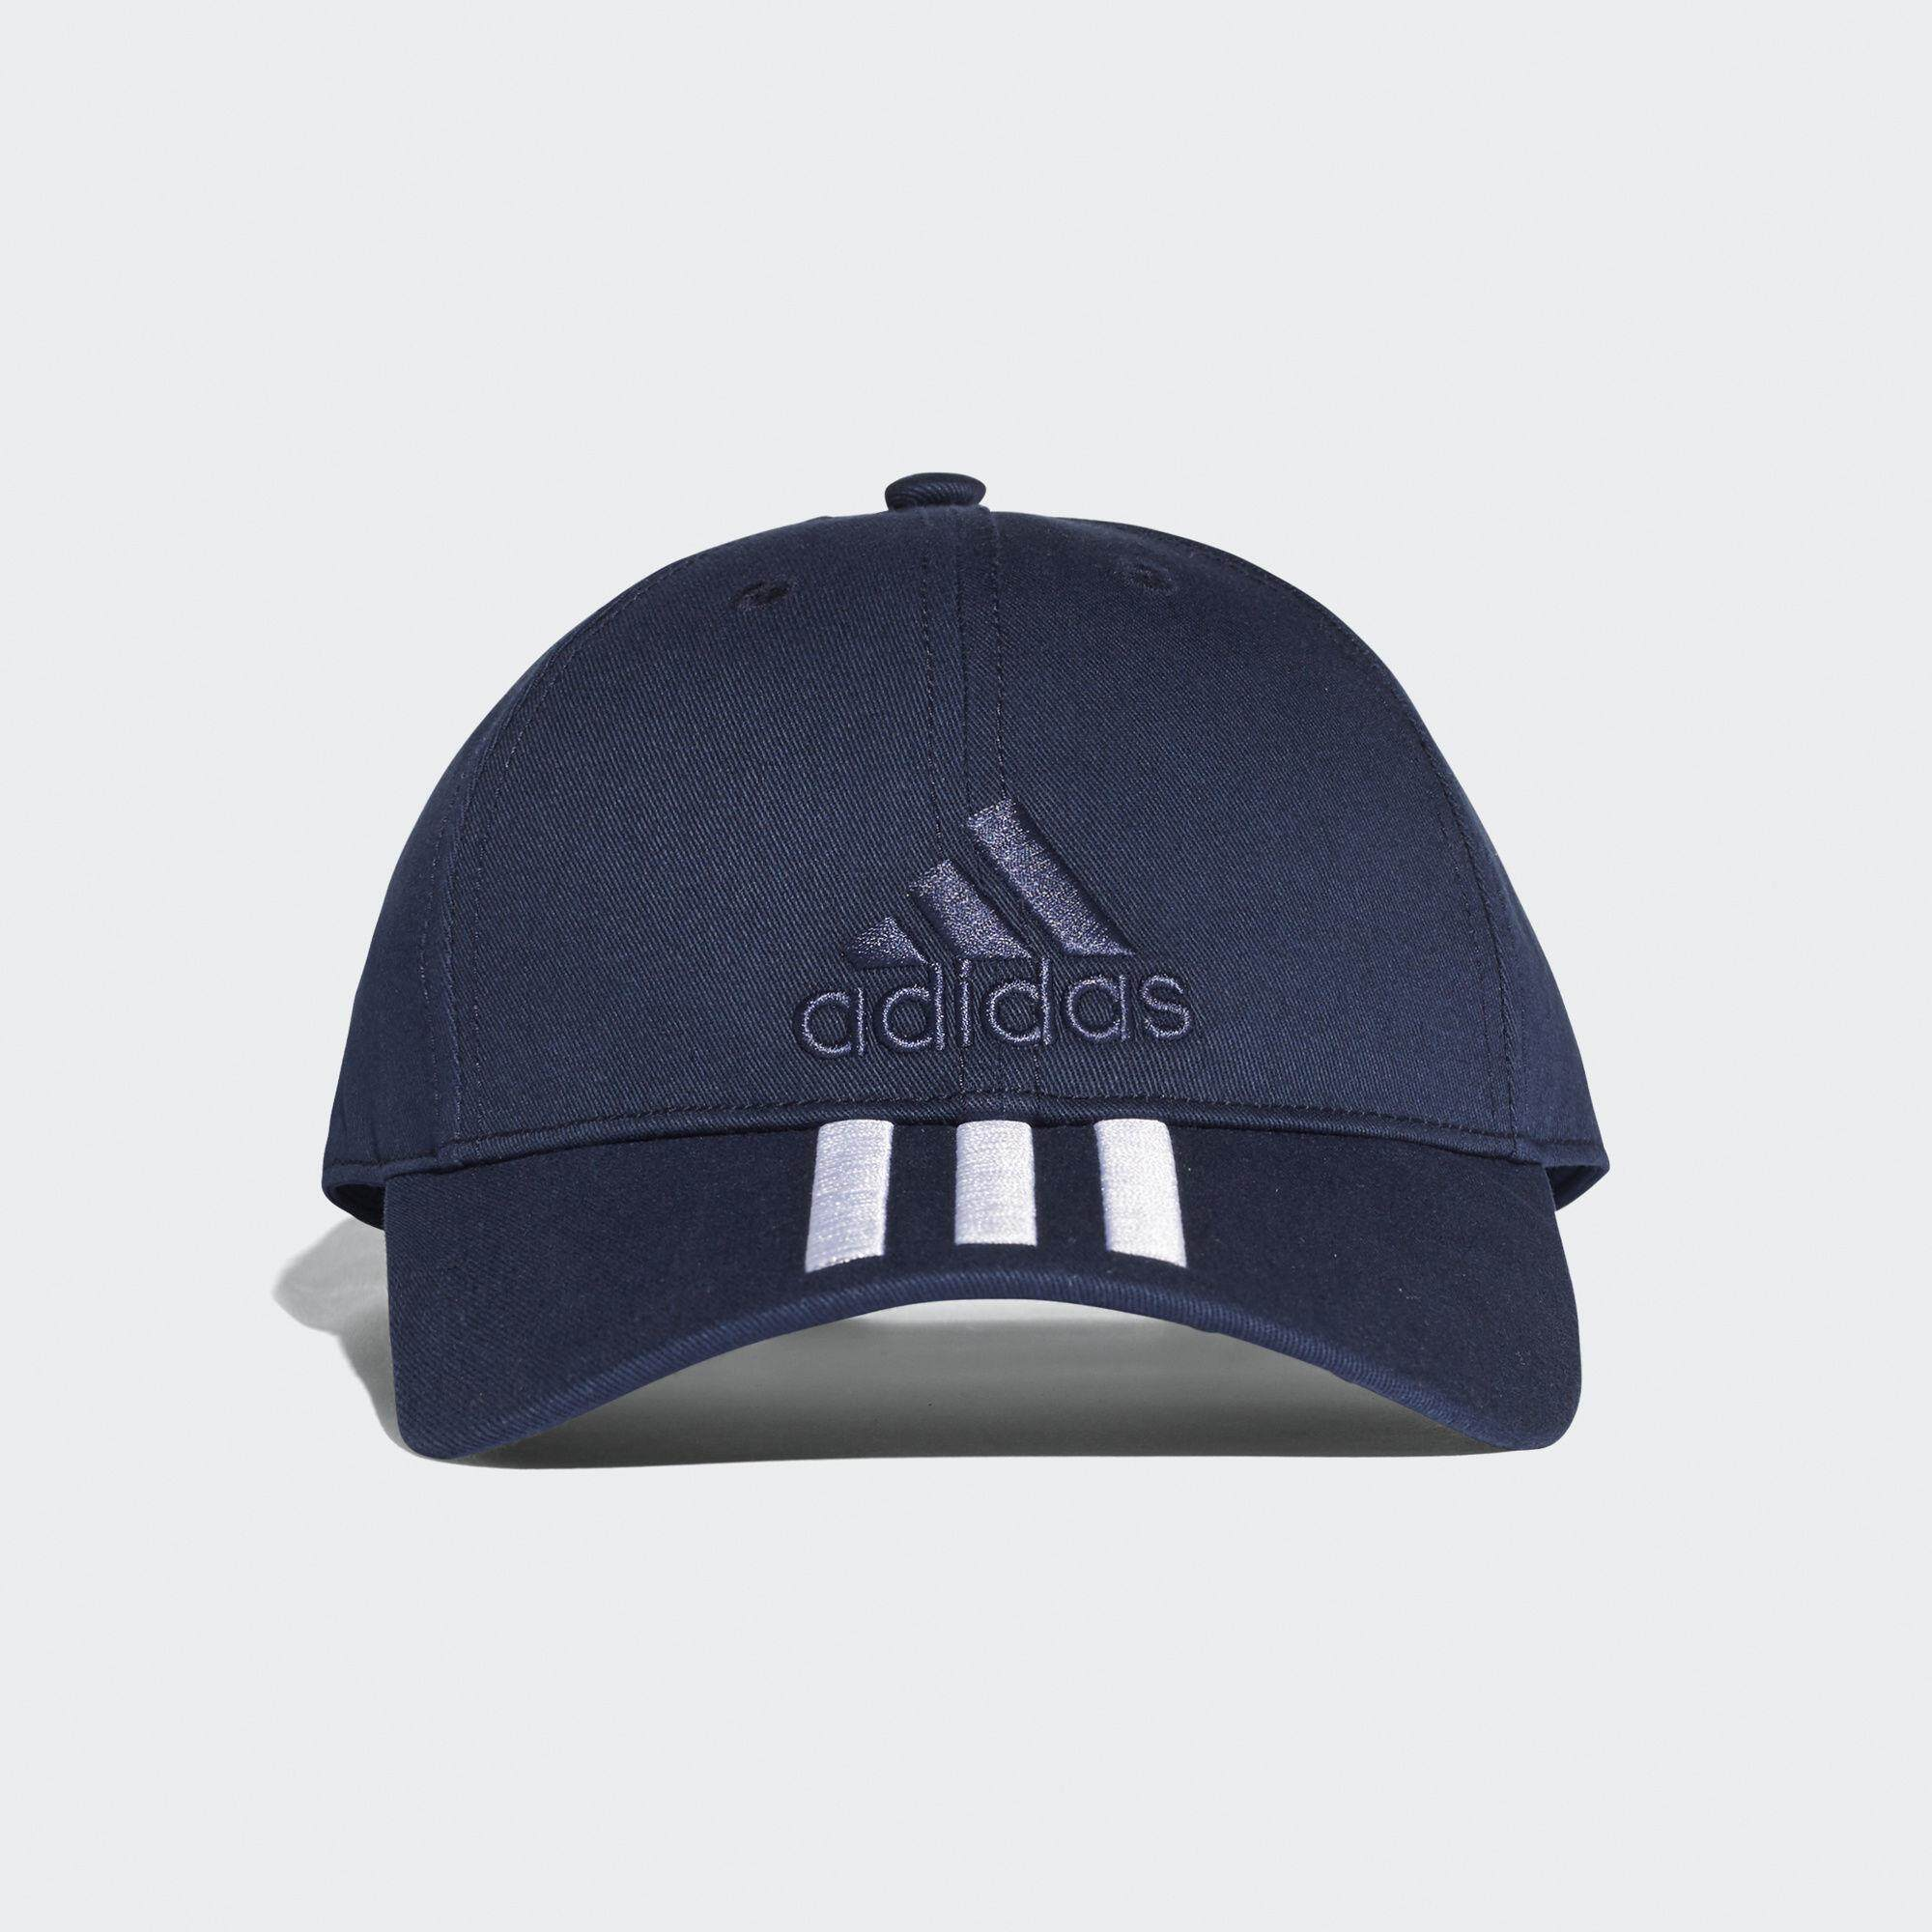 ADIDAS TRAINING SIX-PANEL CLASSIC 3-STRIPES CAP BK0808